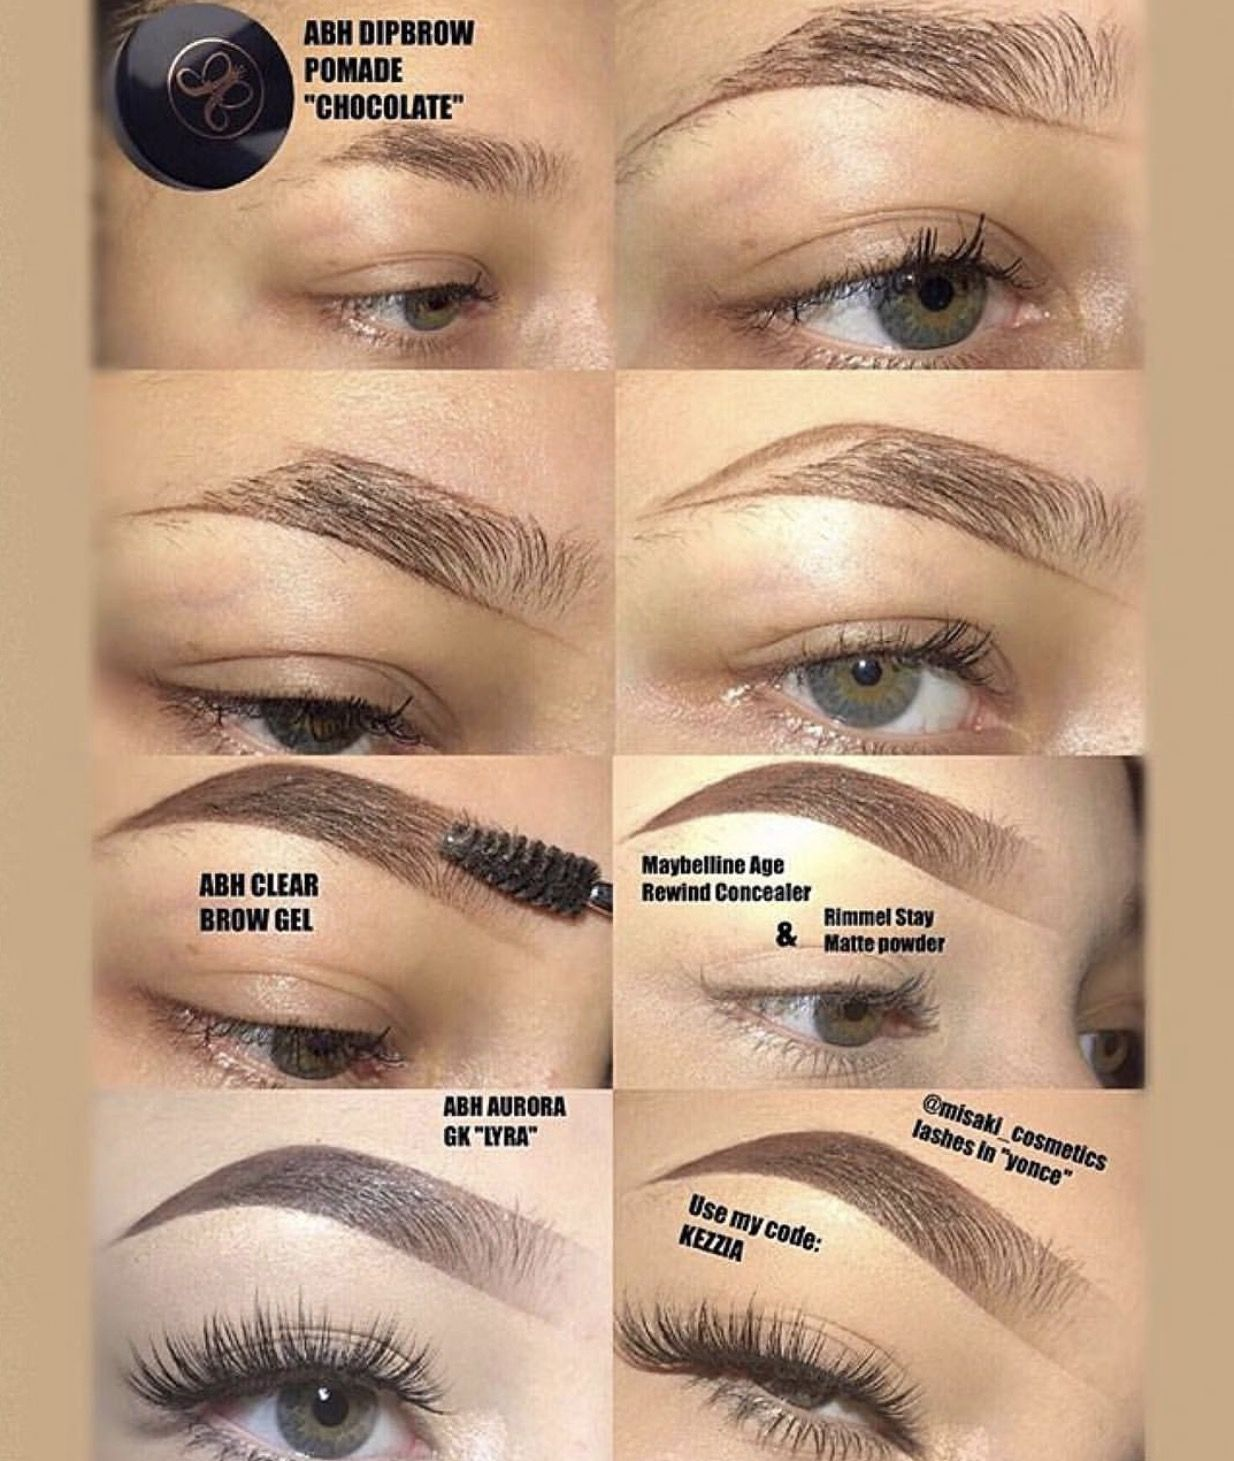 Pin By Charlotte Centing On Makeup For Eyebrows Pinterest Makeup